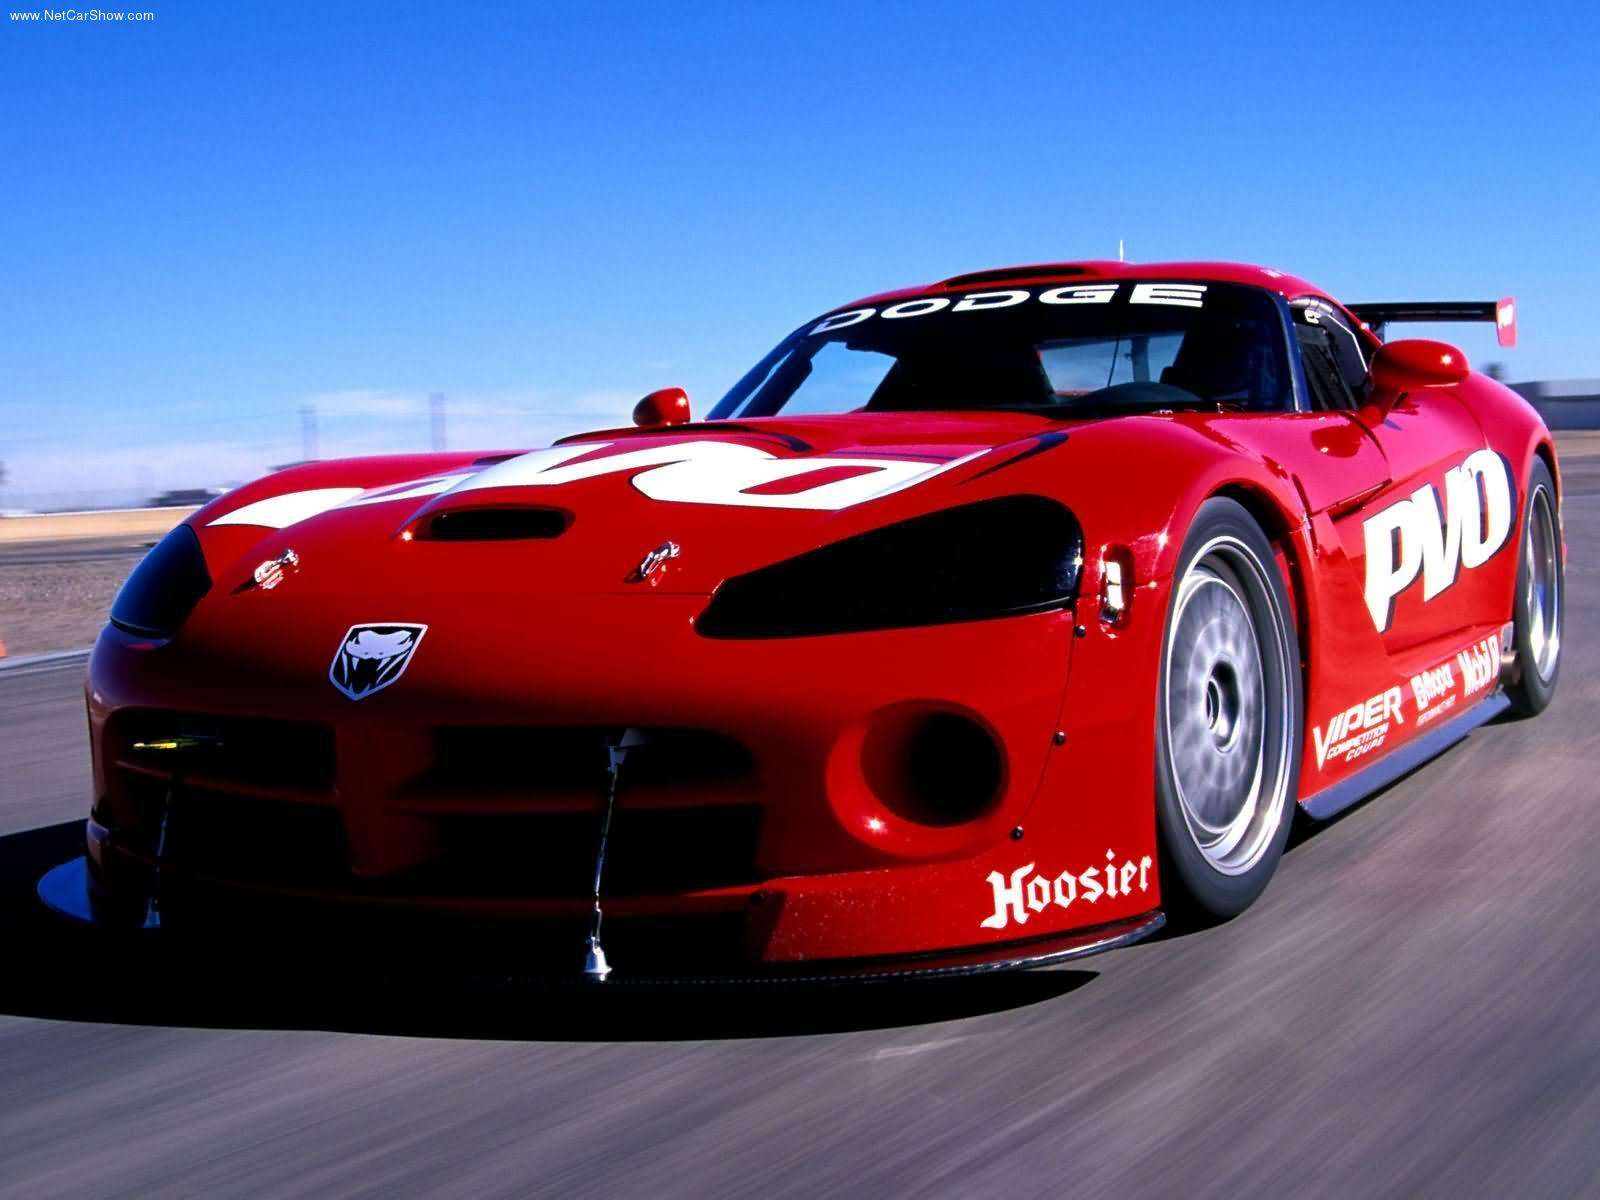 That Time Hennessey Attempted 230 mph in a Viper - Part 1 ... - photo#40